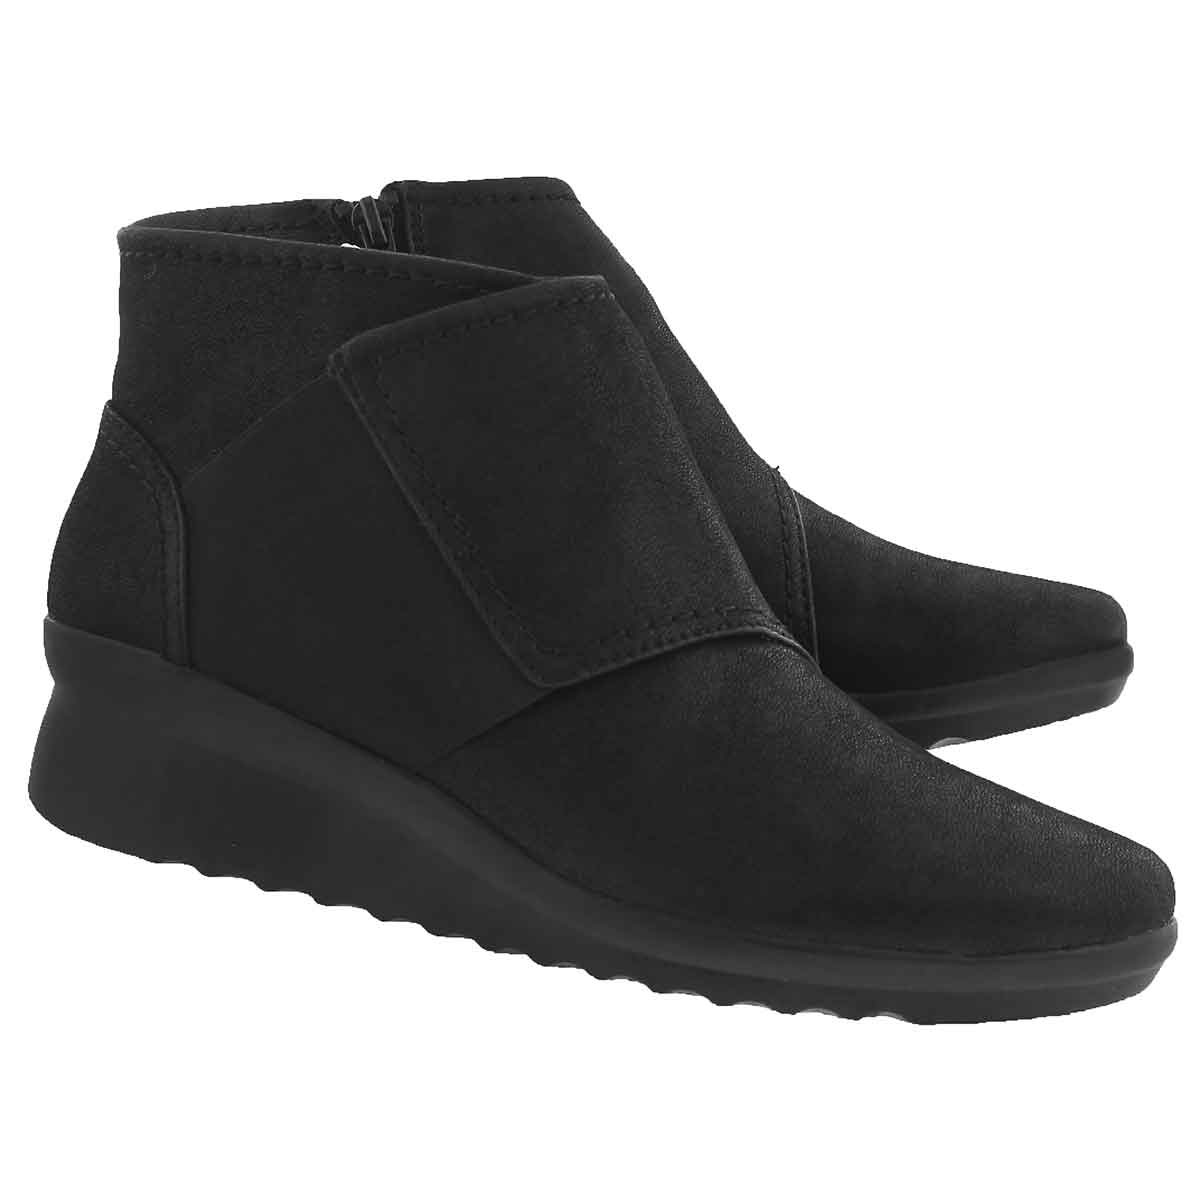 b1e59b917aae Lds Caddell Rush blk wedge boot. 0%. Close. clarks